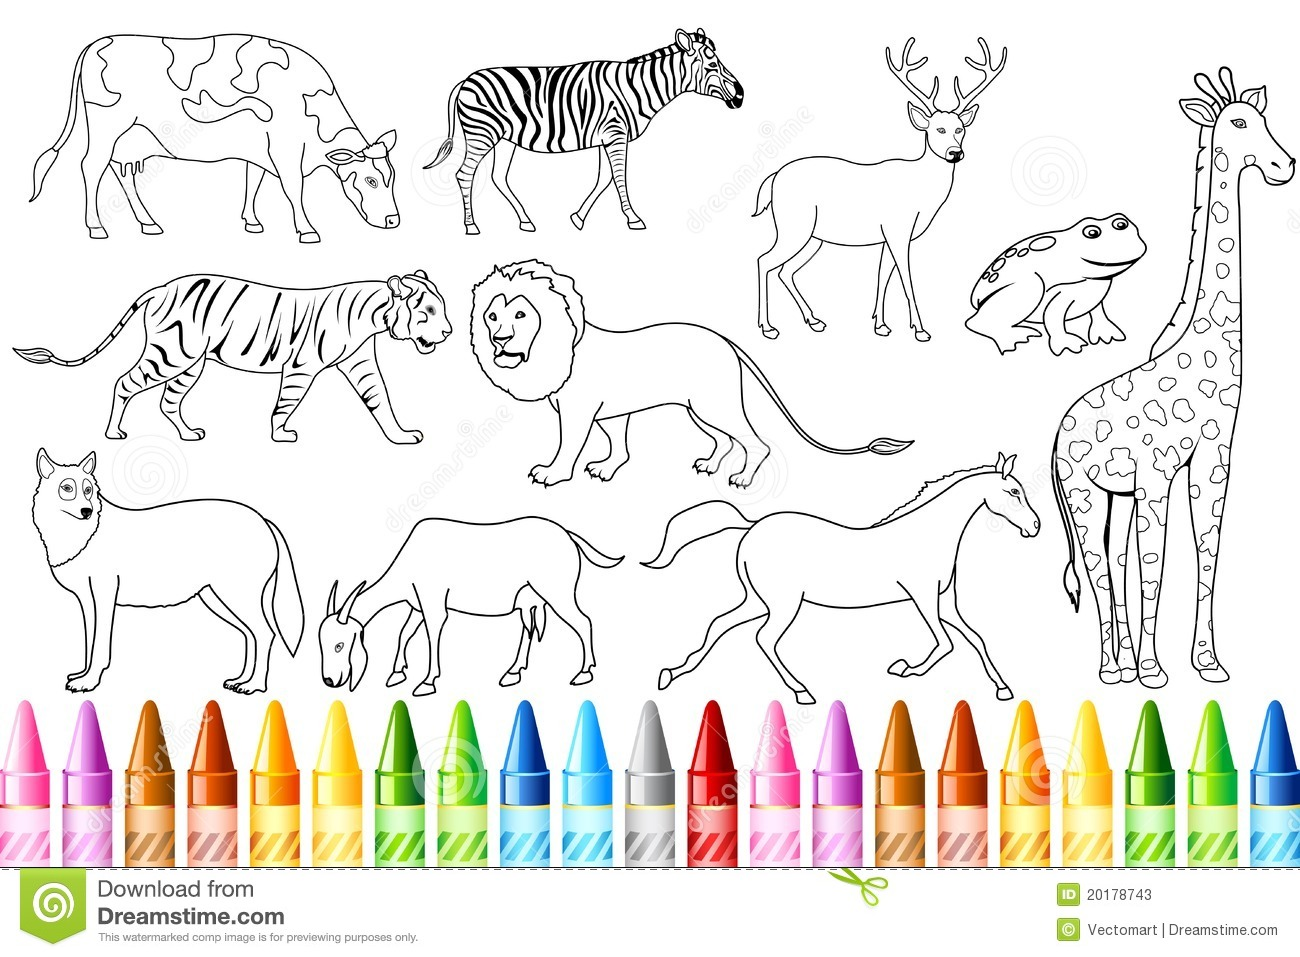 The zoology coloring book - Animal Color Book Stock Photos